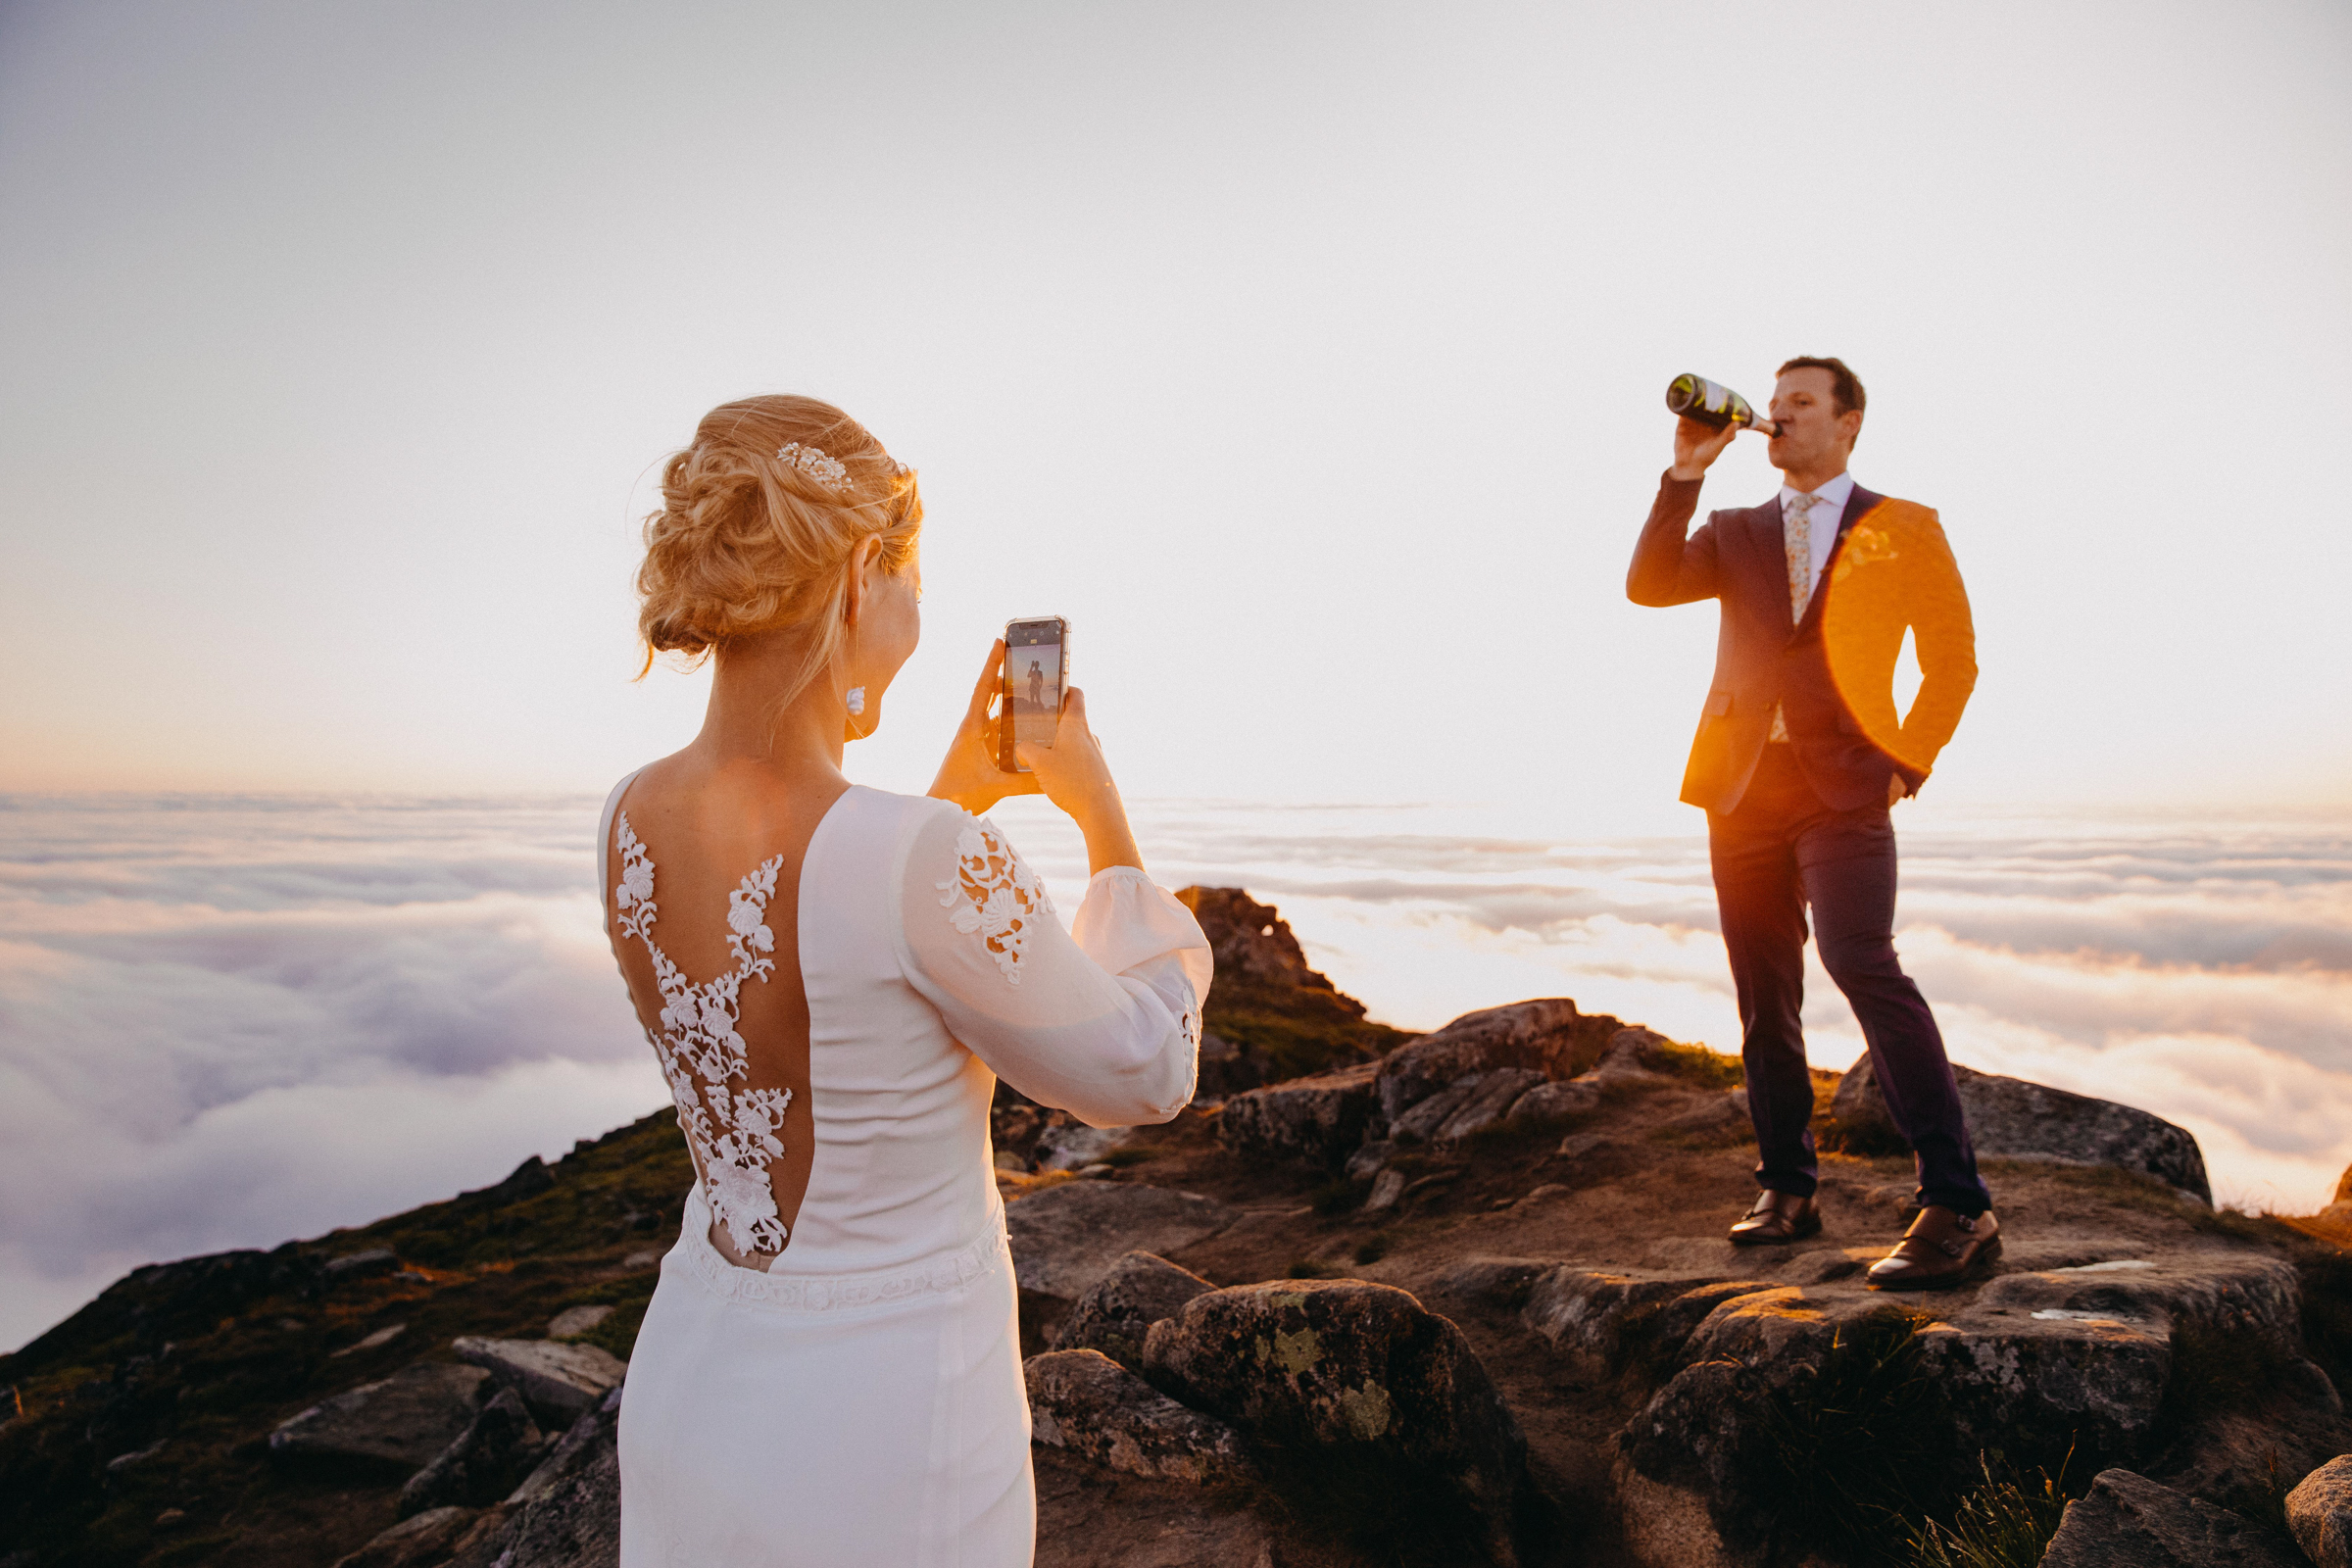 Bride shoots groom drinking from bottle at mountaintop Lofoten Norway - photo by Christin Eide Photography